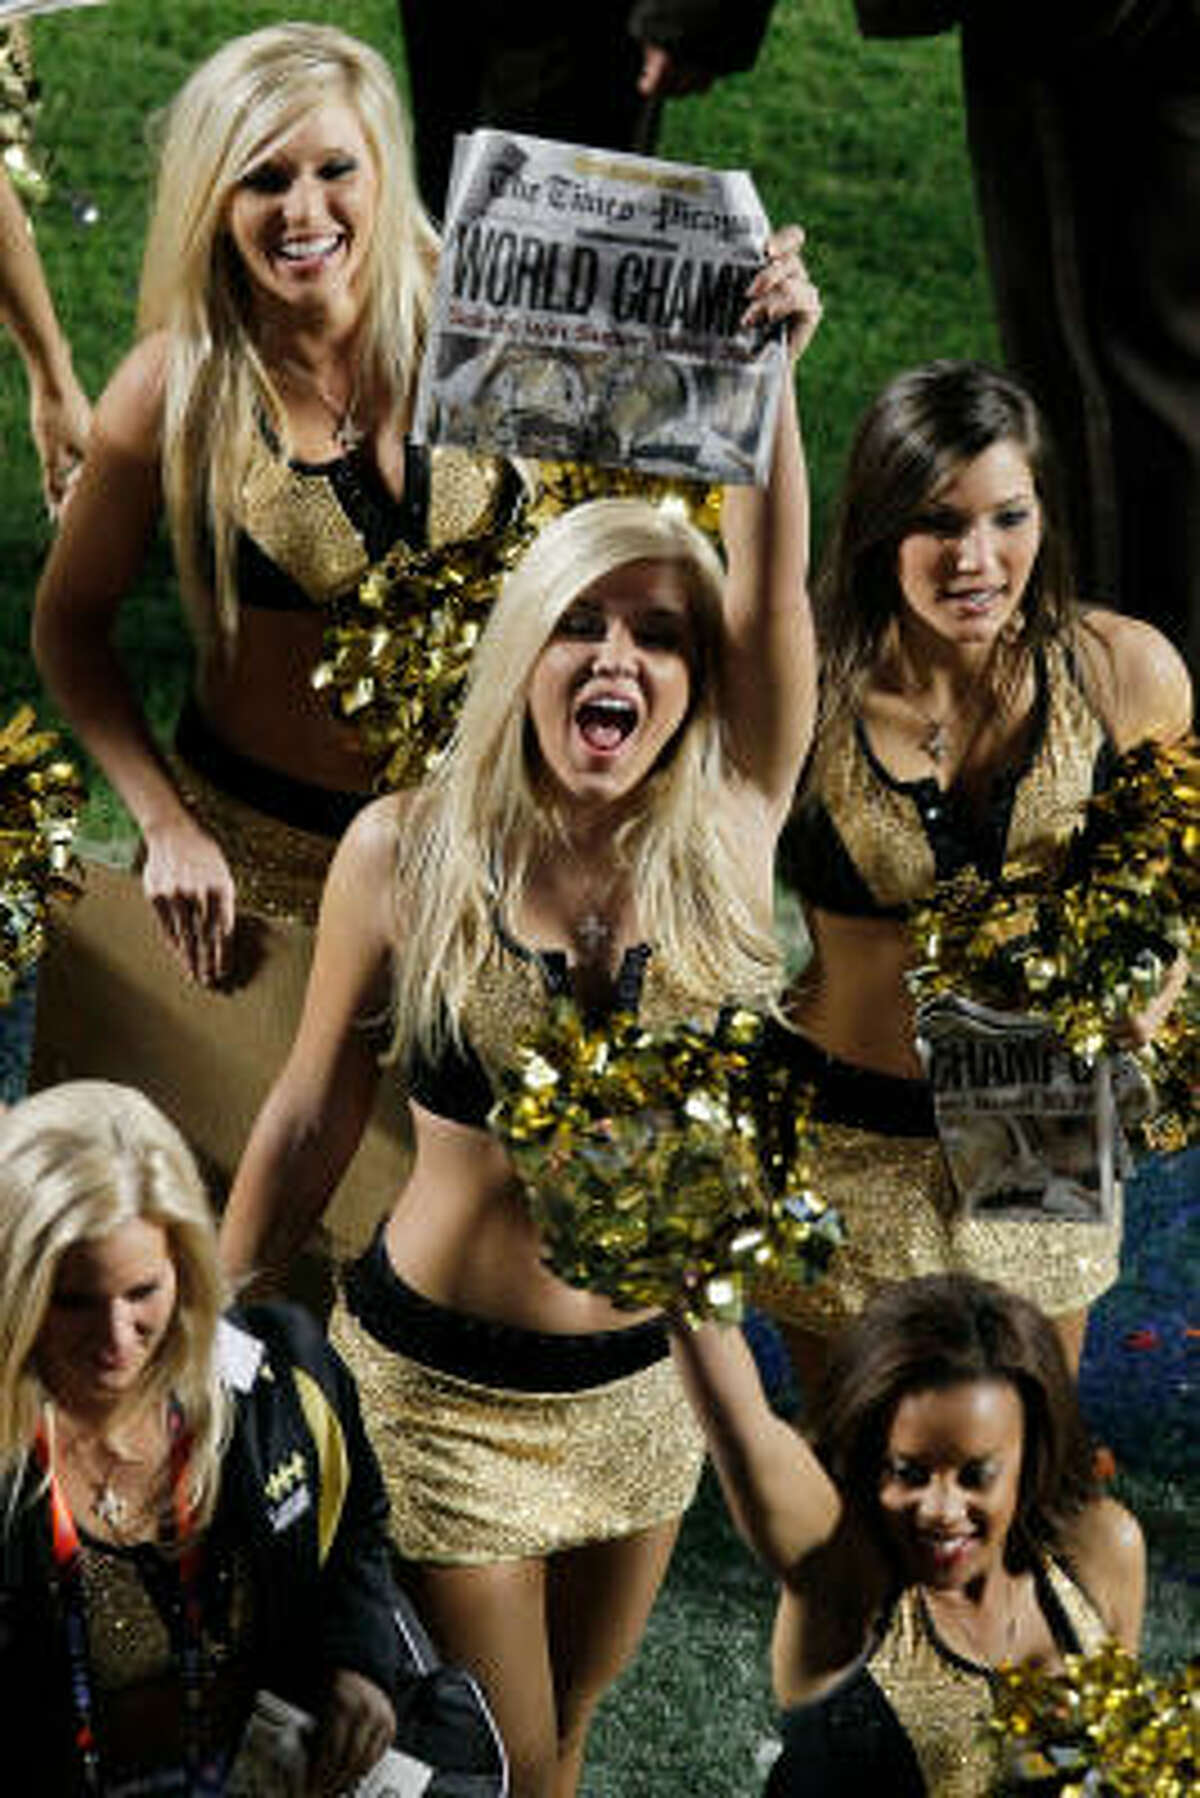 New Orleans Saints cheerleaders hold new papers celebrating the Saints' win over the Indianapolis Colts.